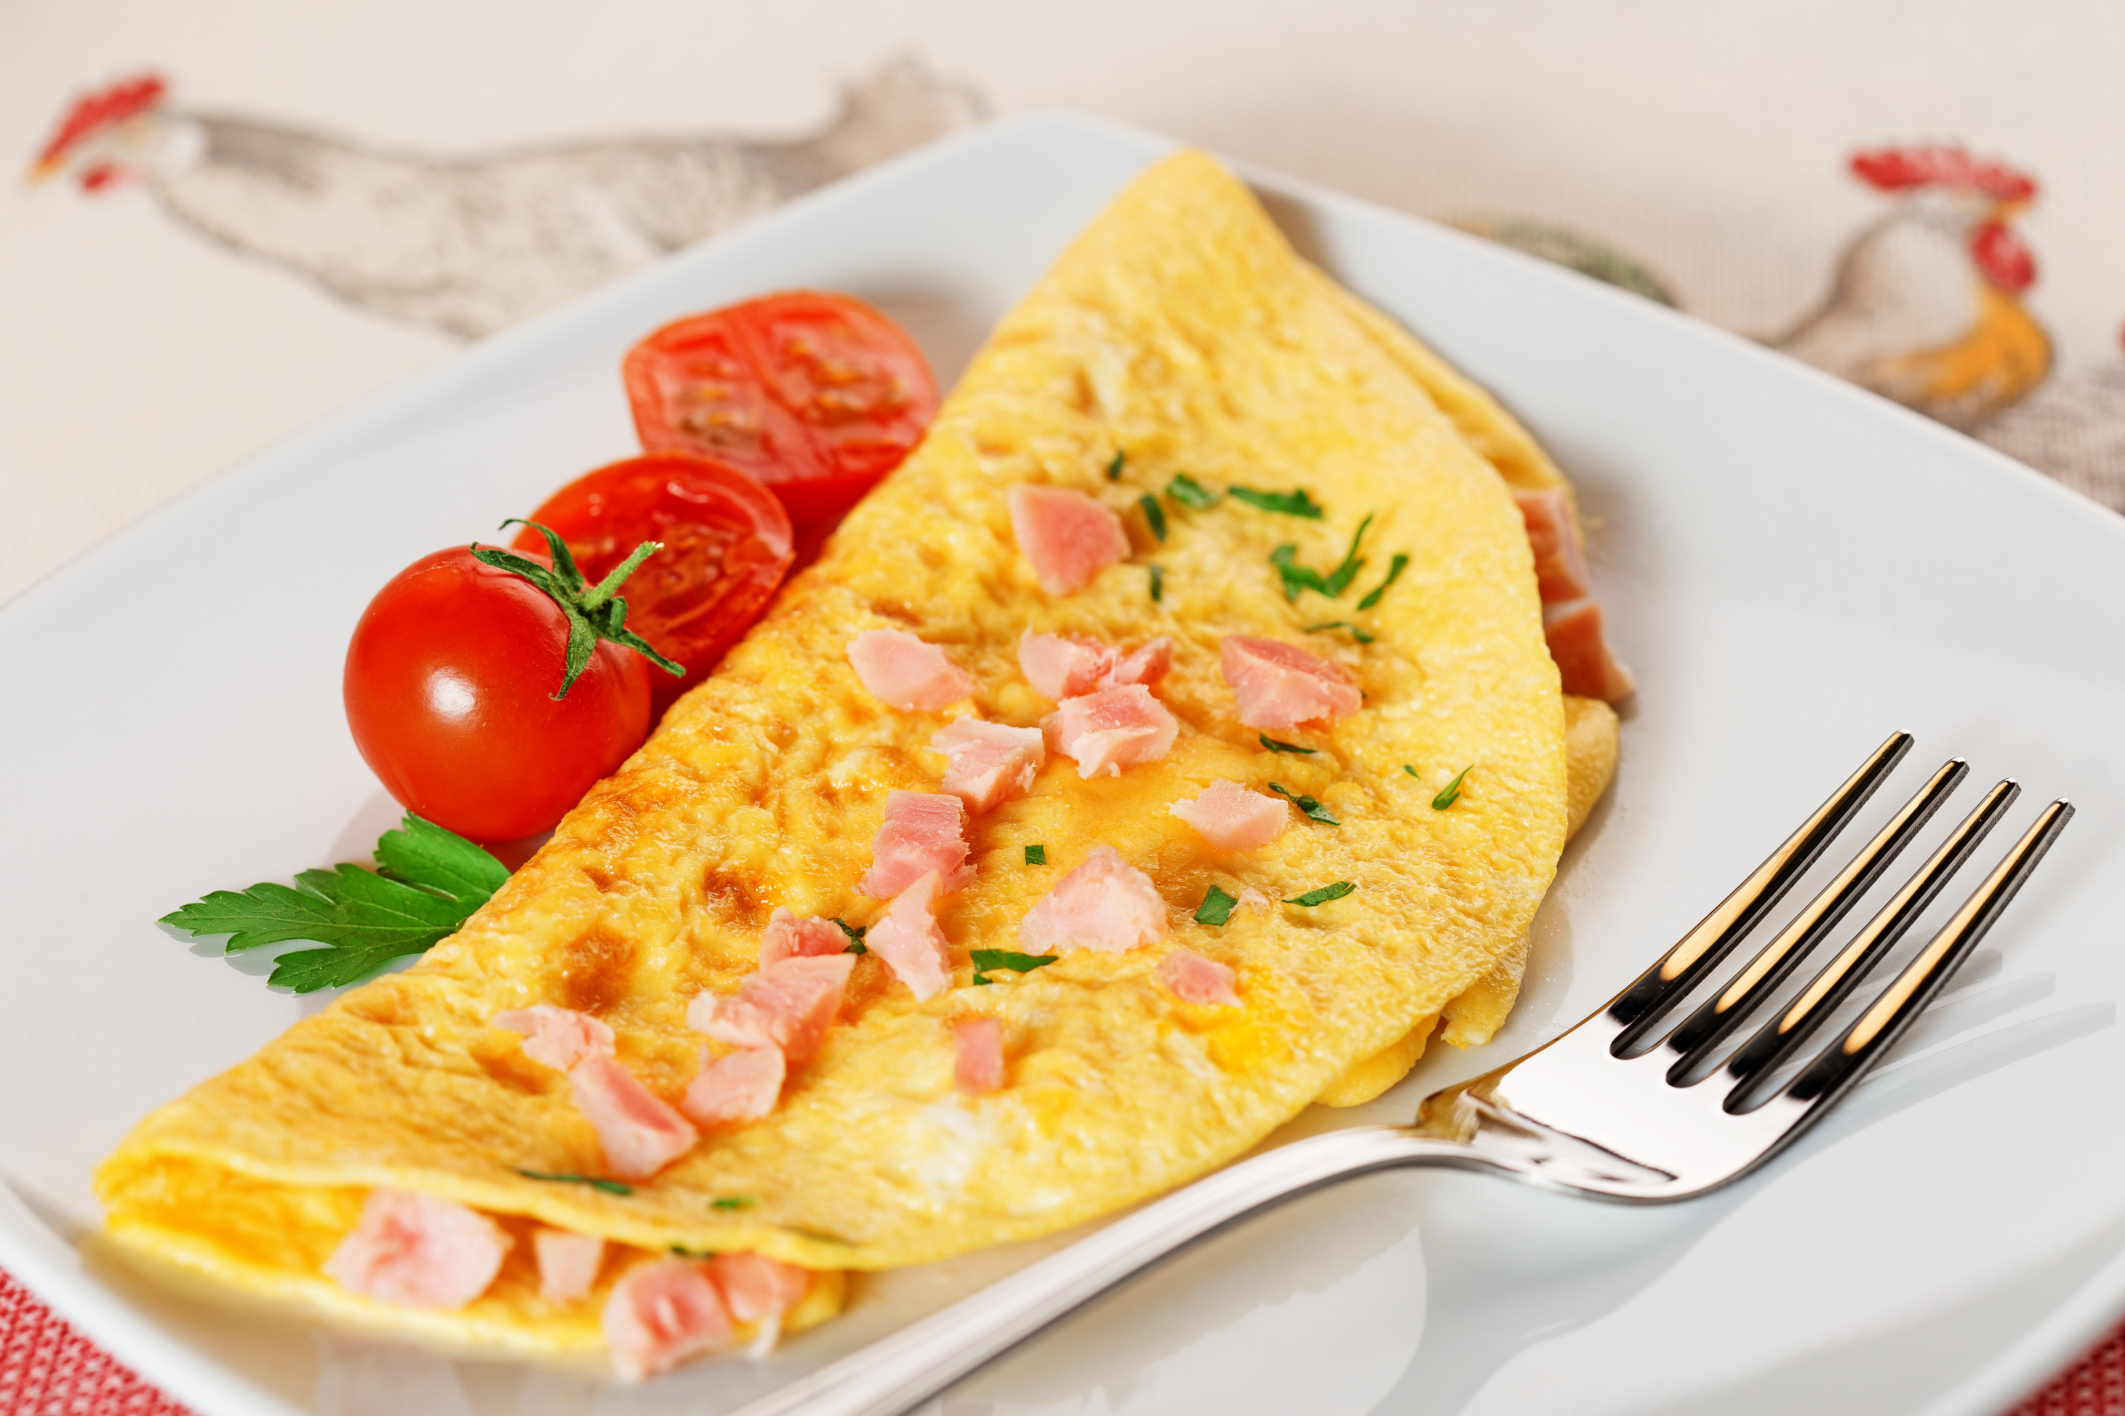 How many calories in an omelet 82